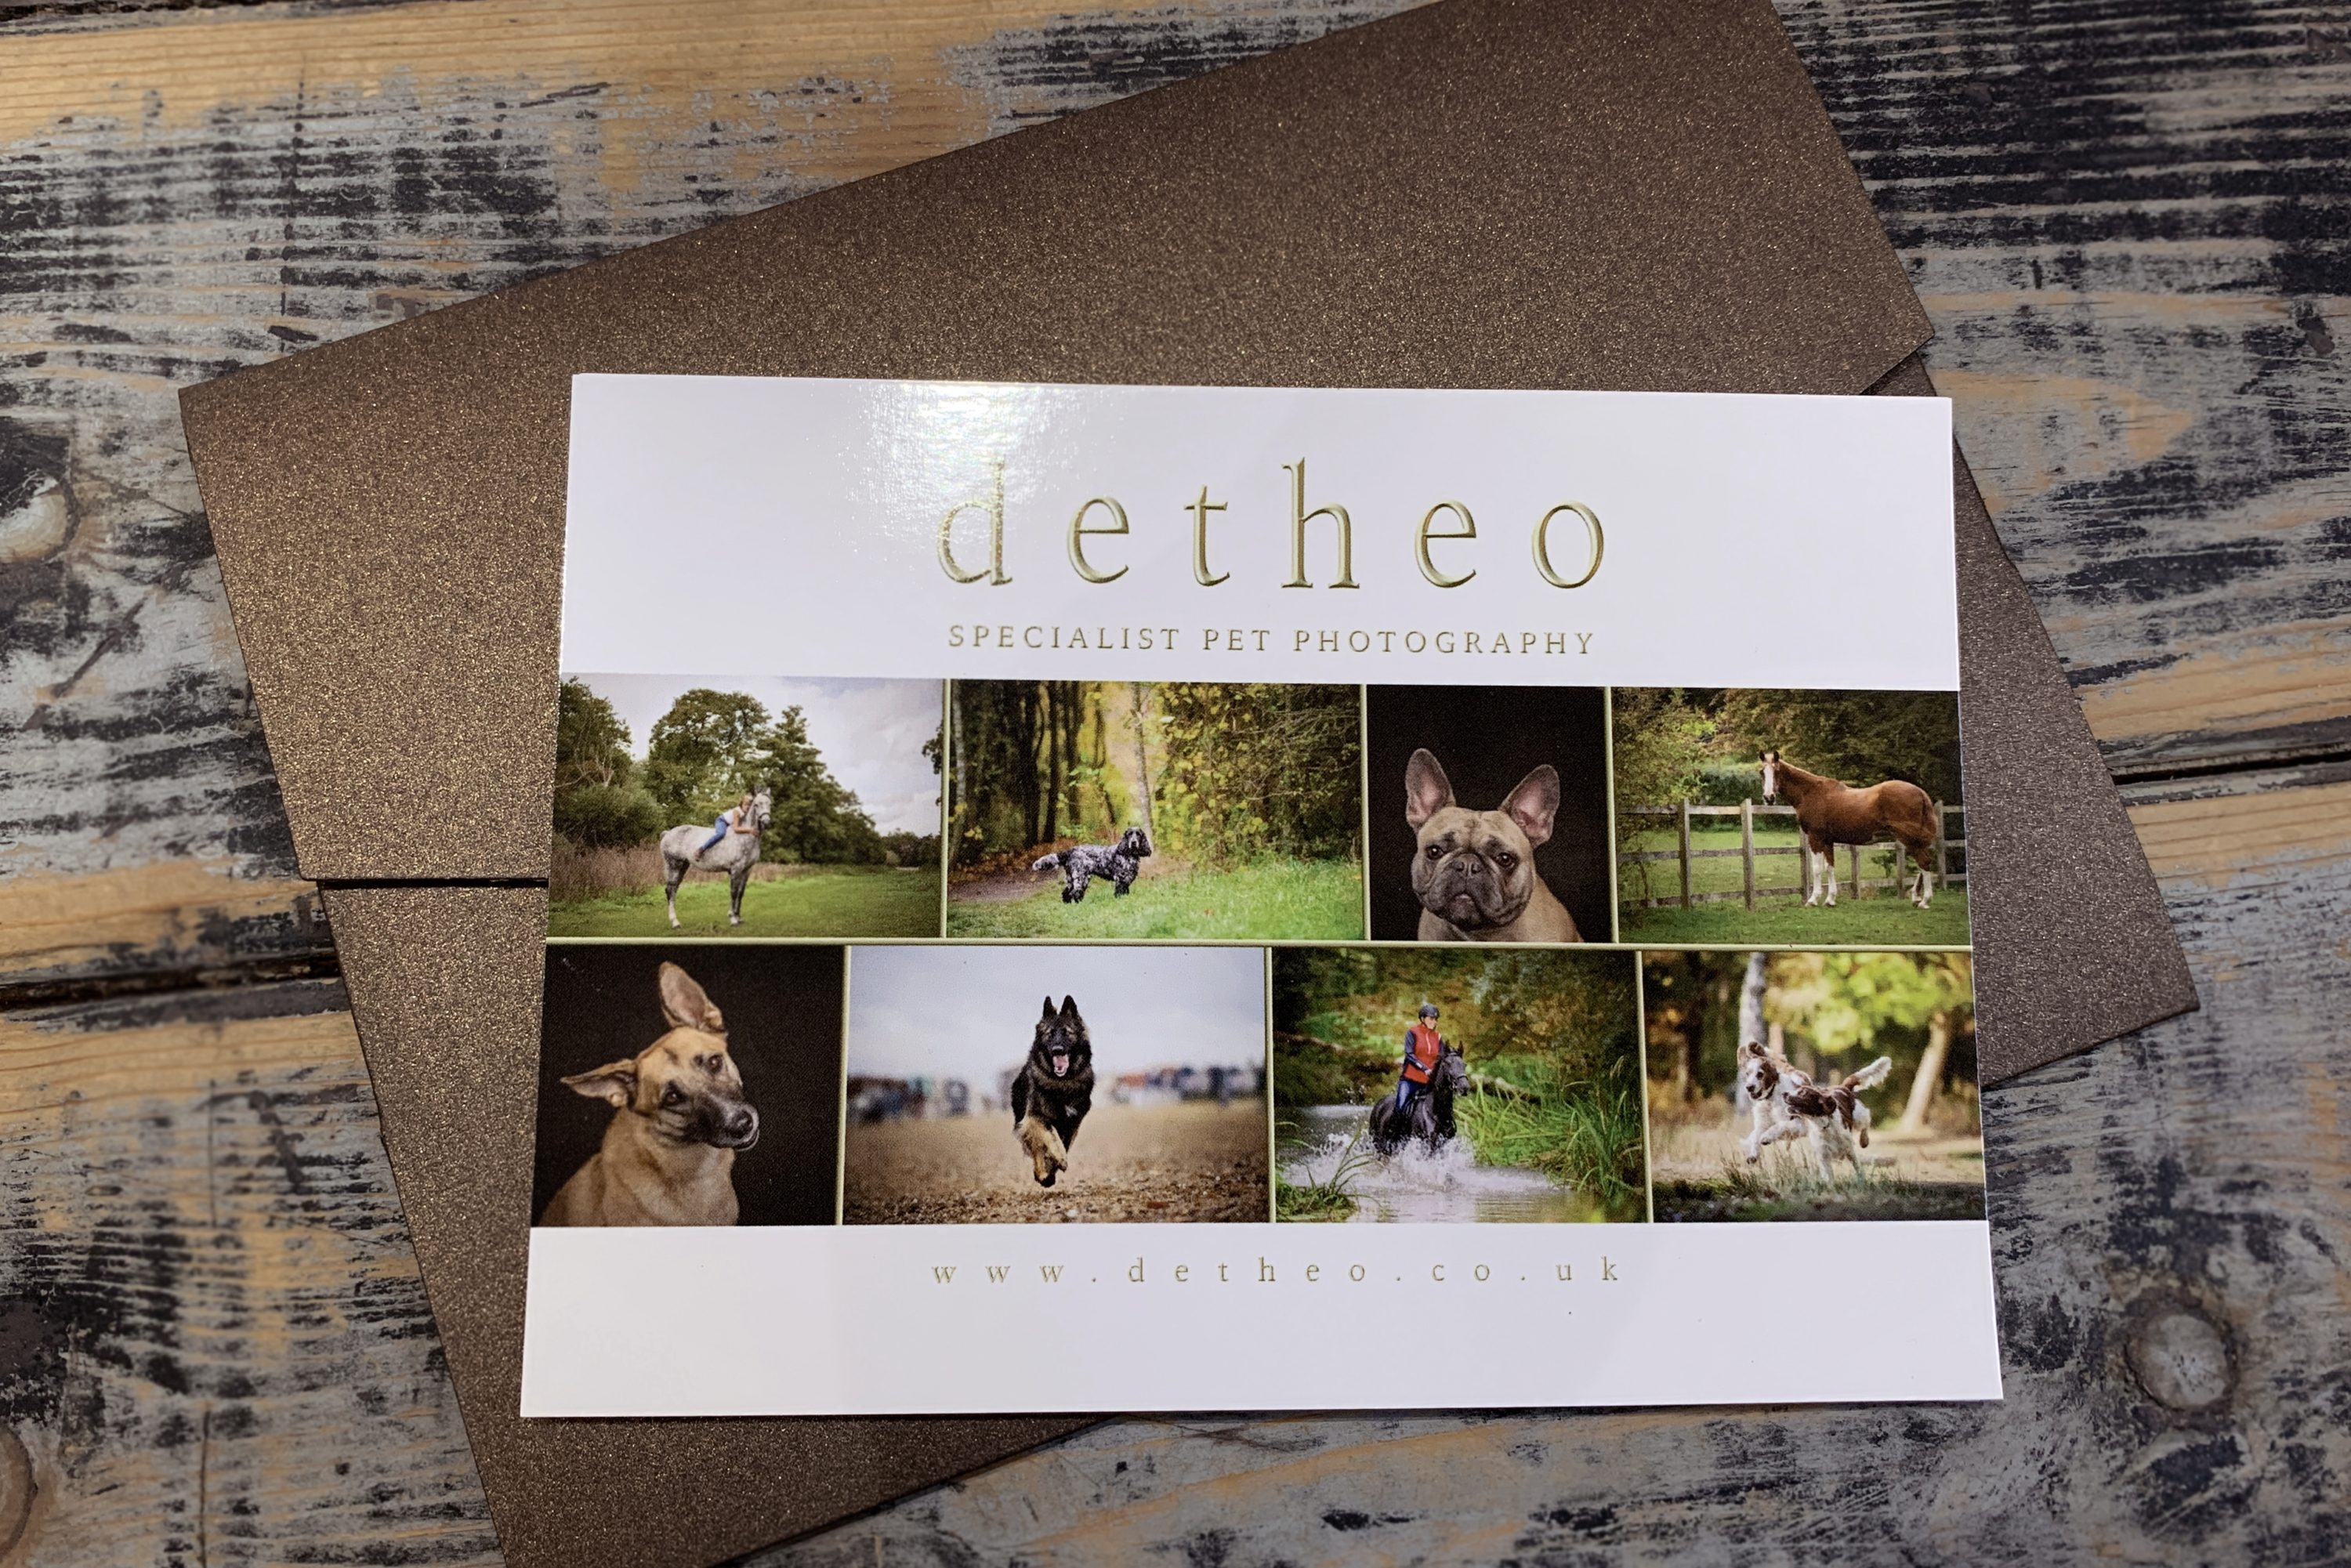 Specialist_Pet_Photography_gift_voucher_from_Detheo_Photography